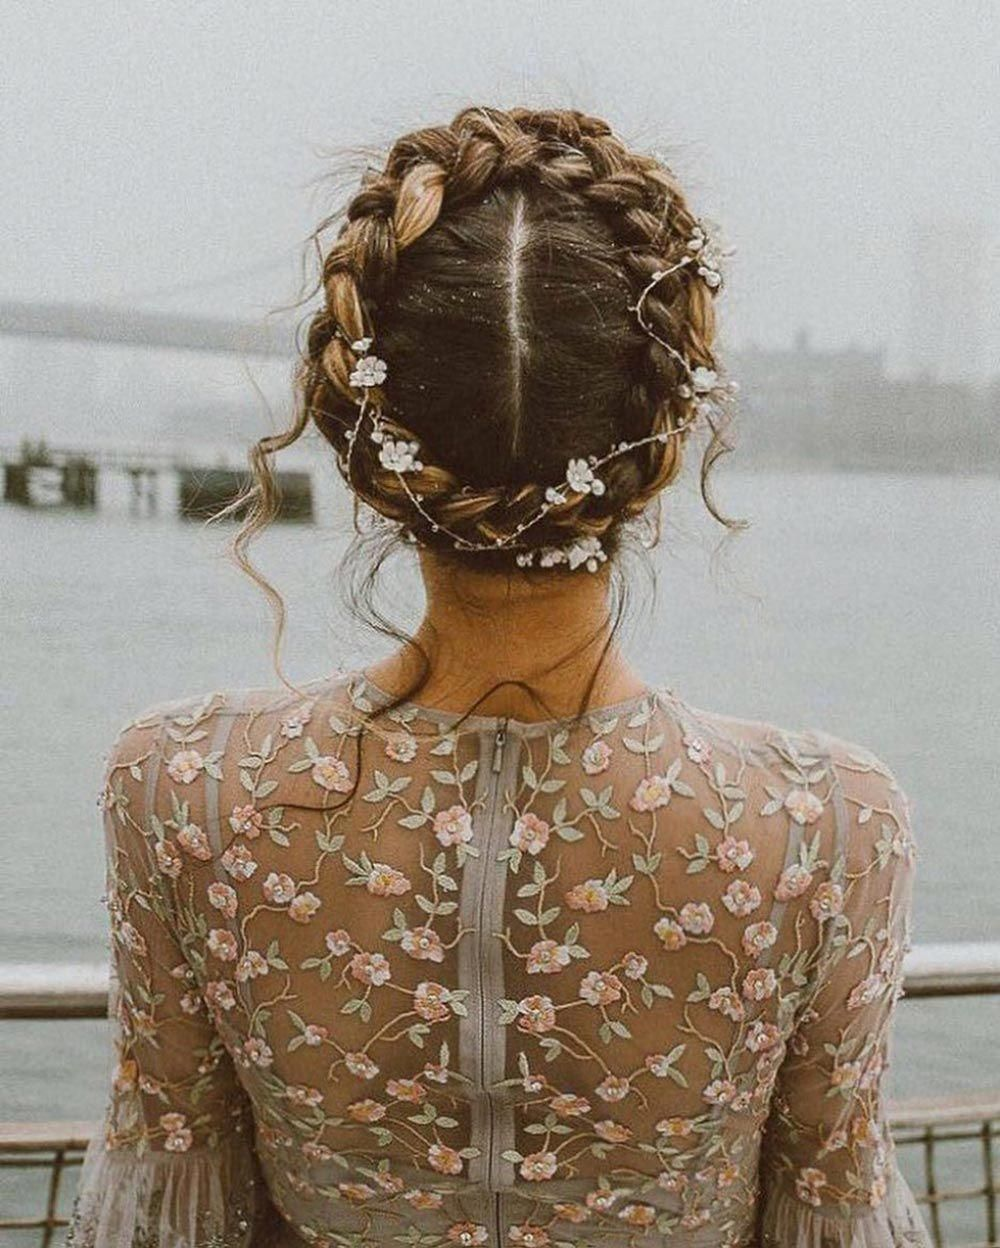 """28 Braided Wedding Hairstyles For Brides with Long Hair <a class=""""pintag"""" href=""""/explore/weddinghairaccessories/"""" title=""""#weddinghairaccessories explore Pinterest"""">#weddinghairaccessories</a> <a class=""""pintag"""" href=""""/explore/weddingbraids/"""" title=""""#weddingbraids explore Pinterest"""">#weddingbraids</a> <a class=""""pintag"""" href=""""/explore/bridalstyle/"""" title=""""#bridalstyle explore Pinterest"""">#bridalstyle</a> <a class=""""pintag"""" href=""""/explore/Weddinghairstyles/"""" title=""""#Weddinghairstyles explore Pinterest"""">#Weddinghairstyles</a><p><a href=""""http://www.homeinteriordesign.org/2018/02/short-guide-to-interior-decoration.html"""">Short guide to interior decoration</a></p>"""